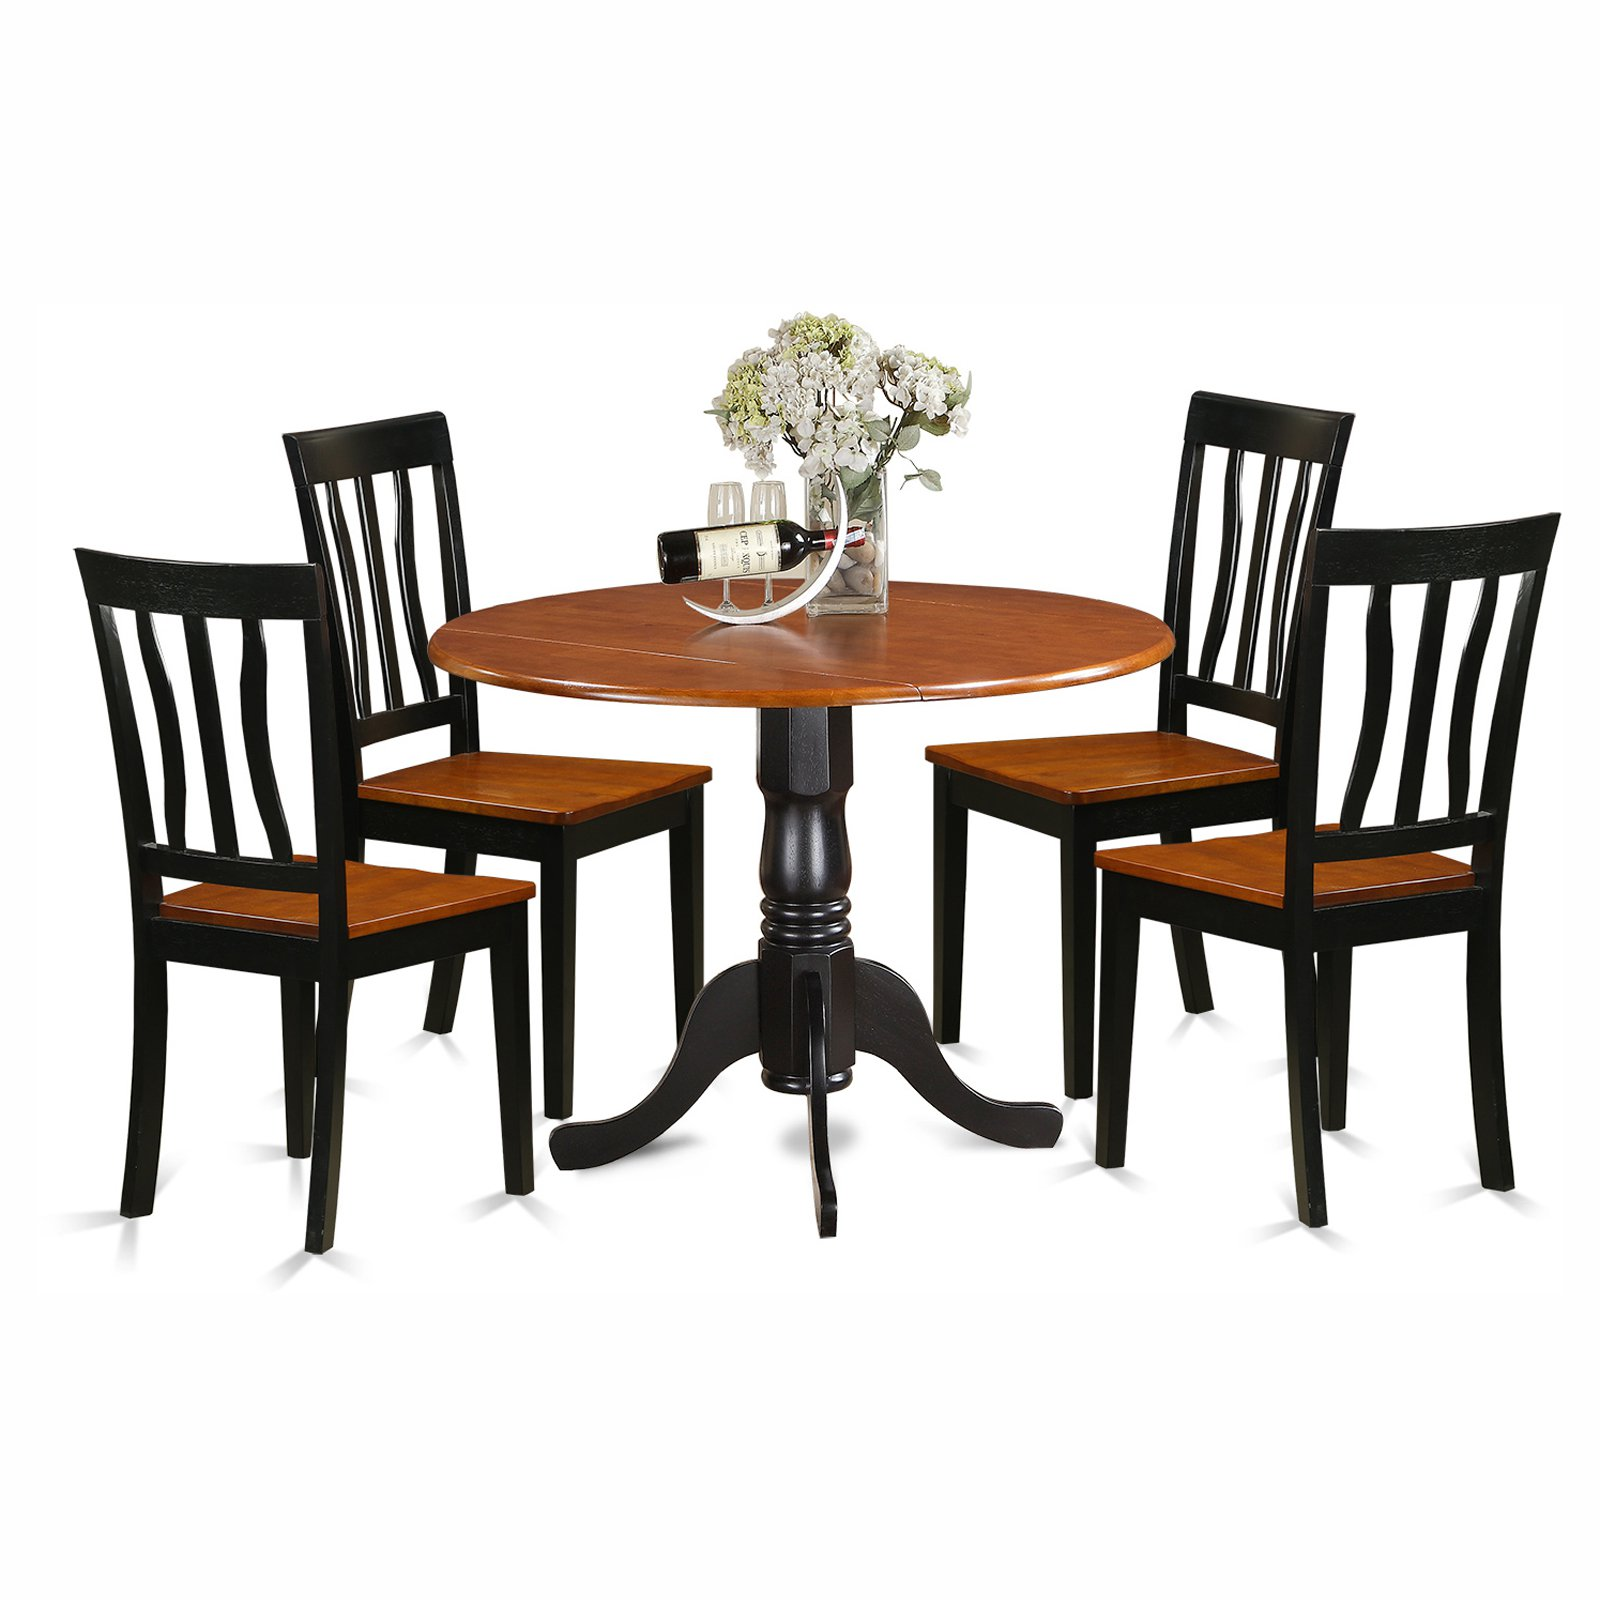 East West Furniture Dublin 5 Piece Drop Leaf Dining Table Set with Wooden Antique Chairs